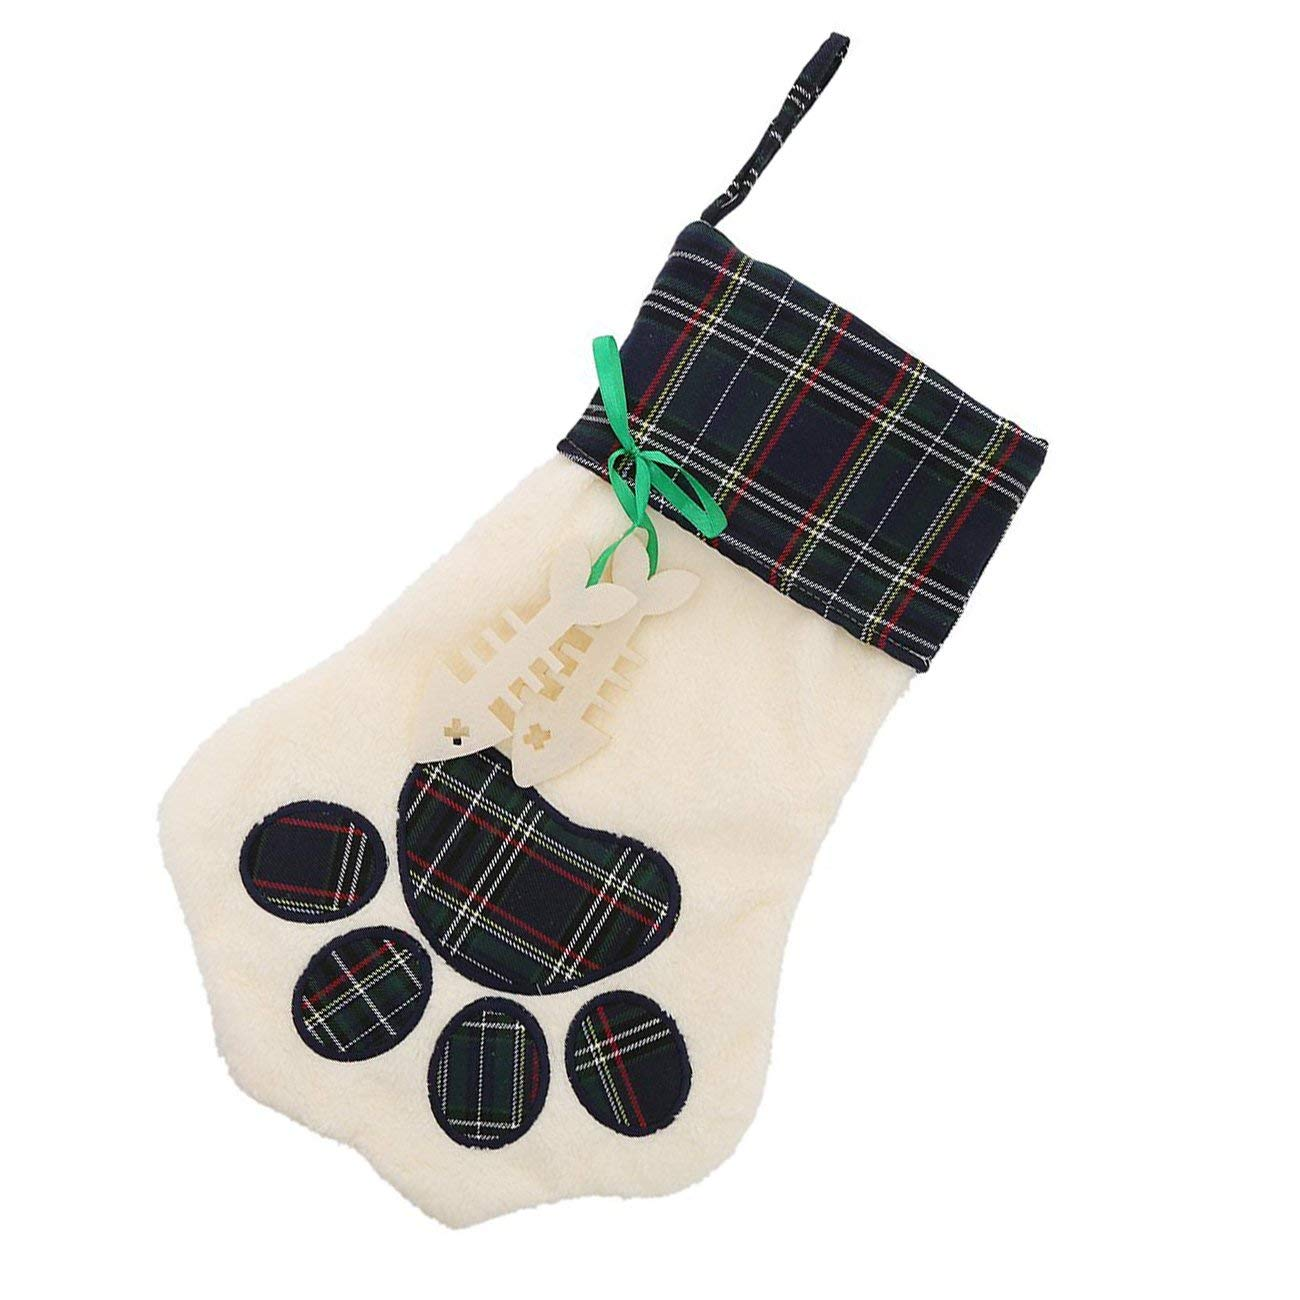 Lovely Personalize Pet Paw Plaid Plush Christmas Stocking Holiday Decor Gifts (Green)